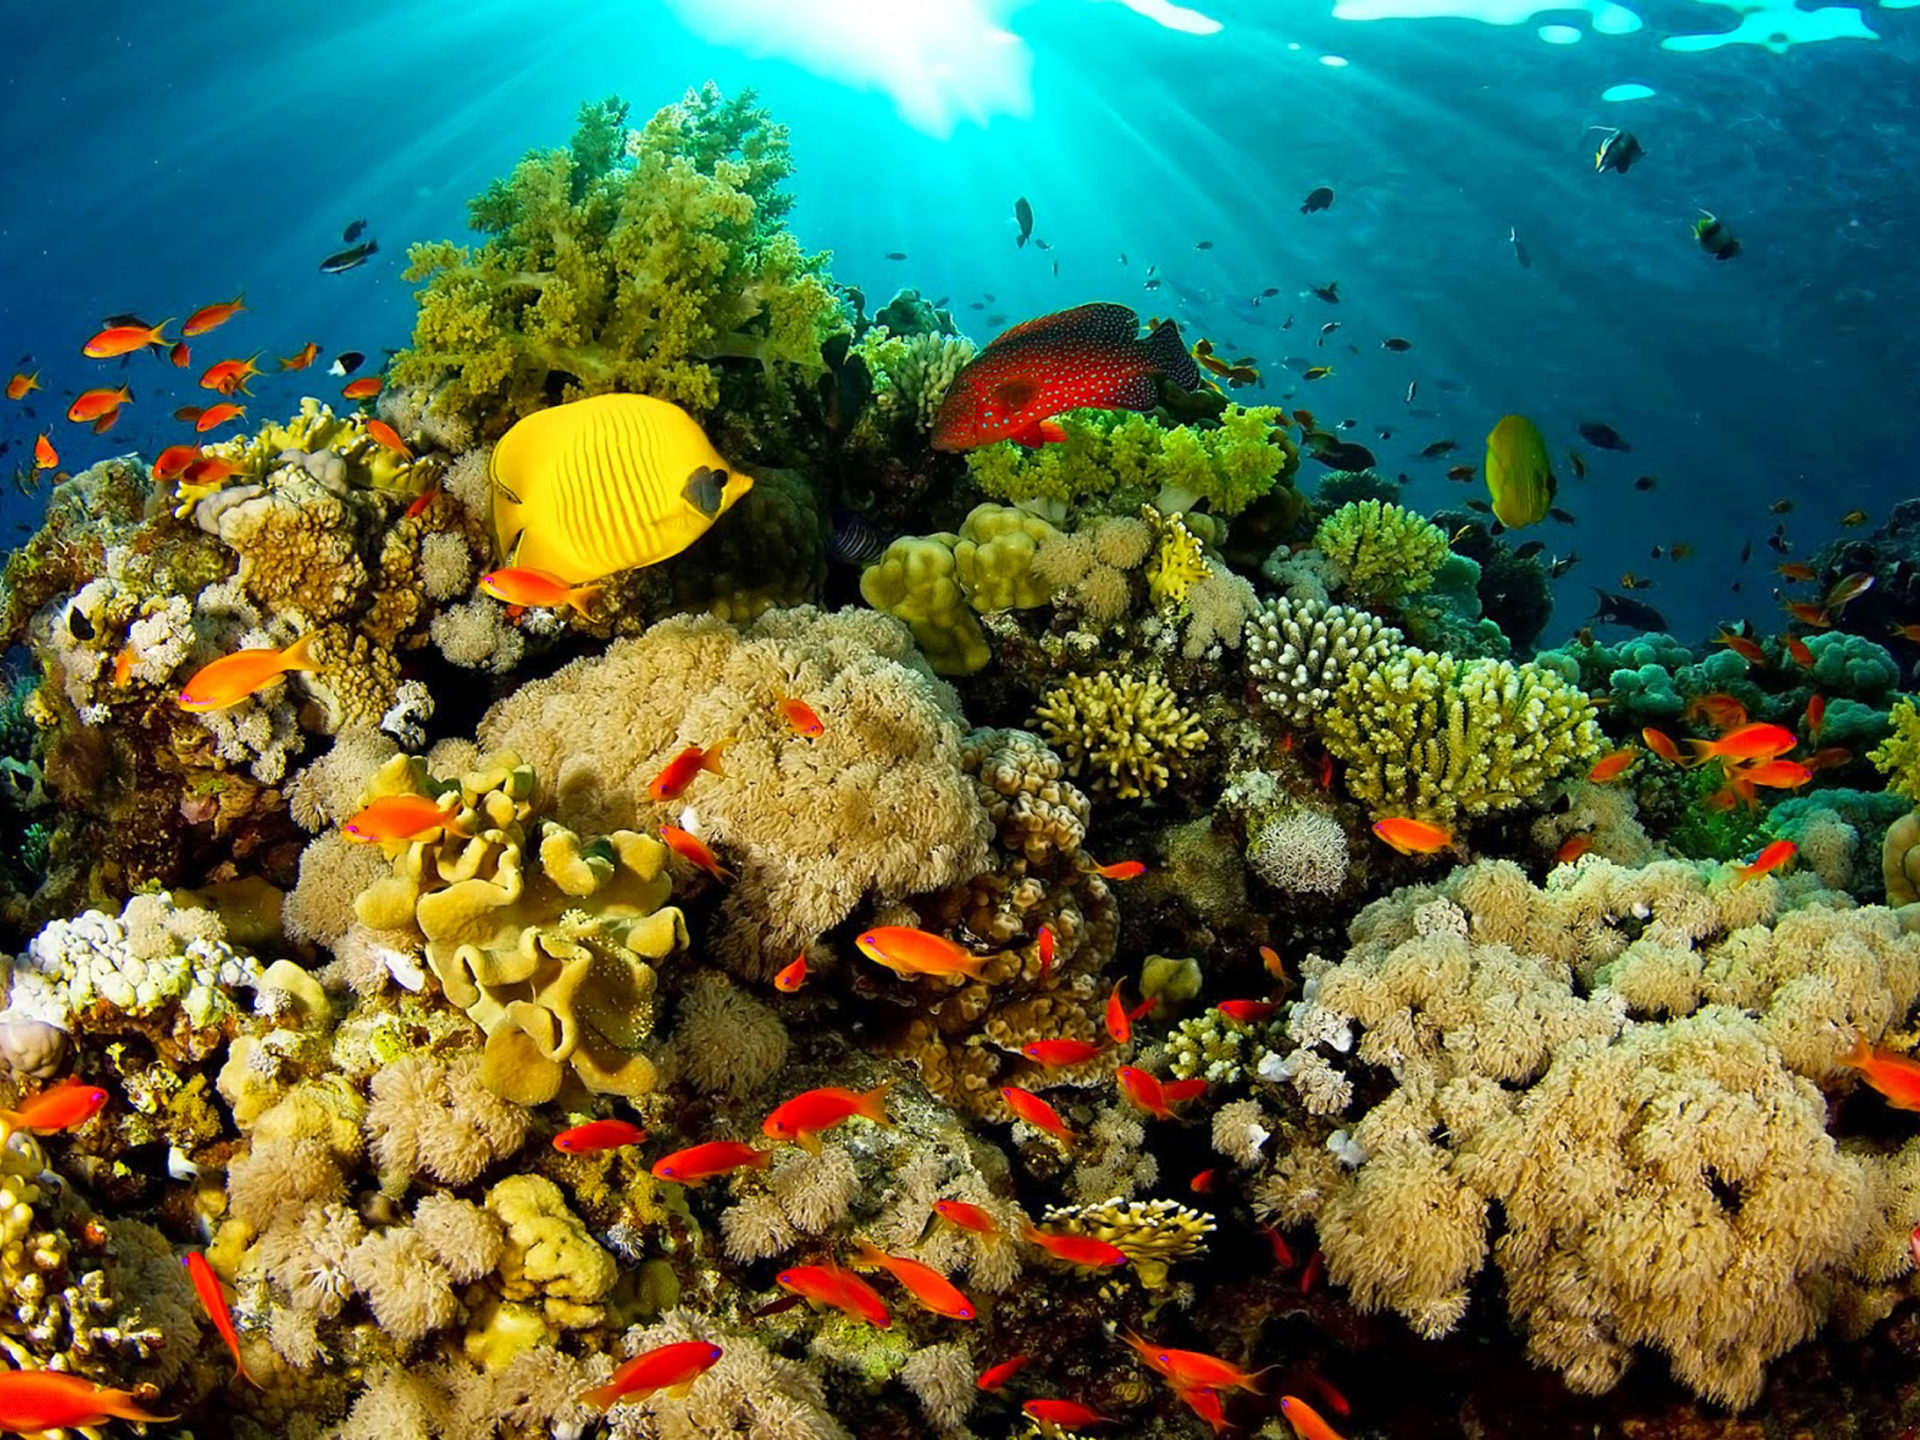 World Beautiful Cars Wallpapers Ocean Fauna Under Water Coral Reefs With Beautiful Coral